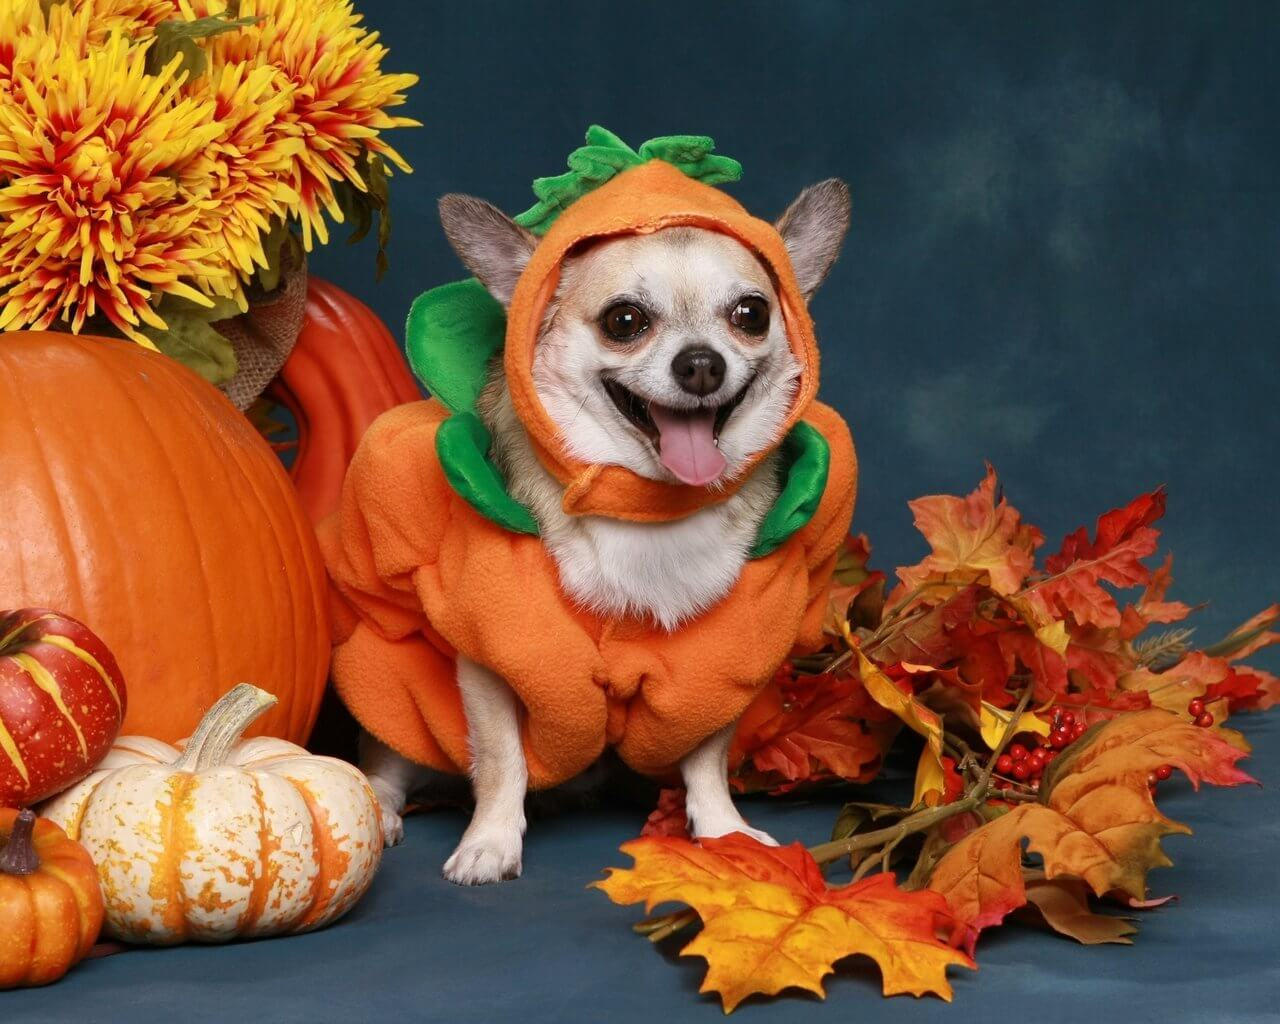 A little pumpkin doggo